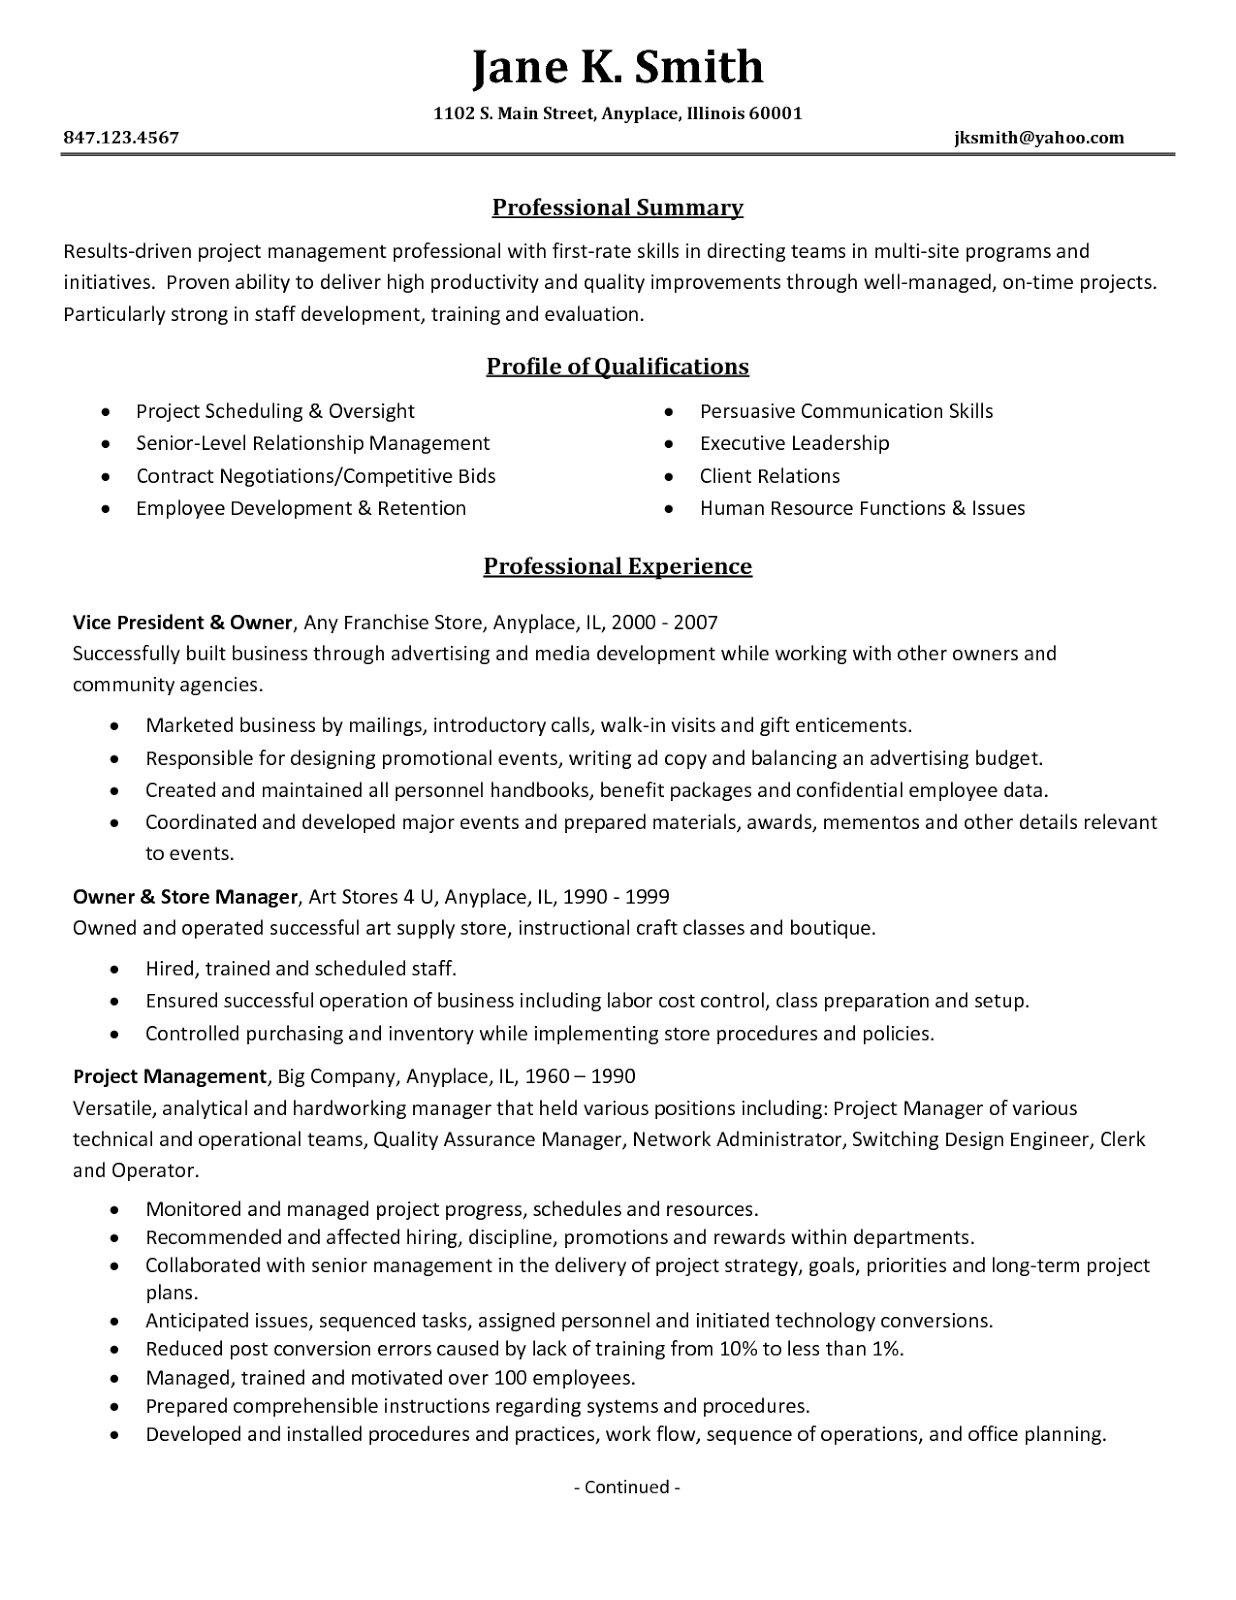 resume builder pdf resume programs free deist category curriculum vitae